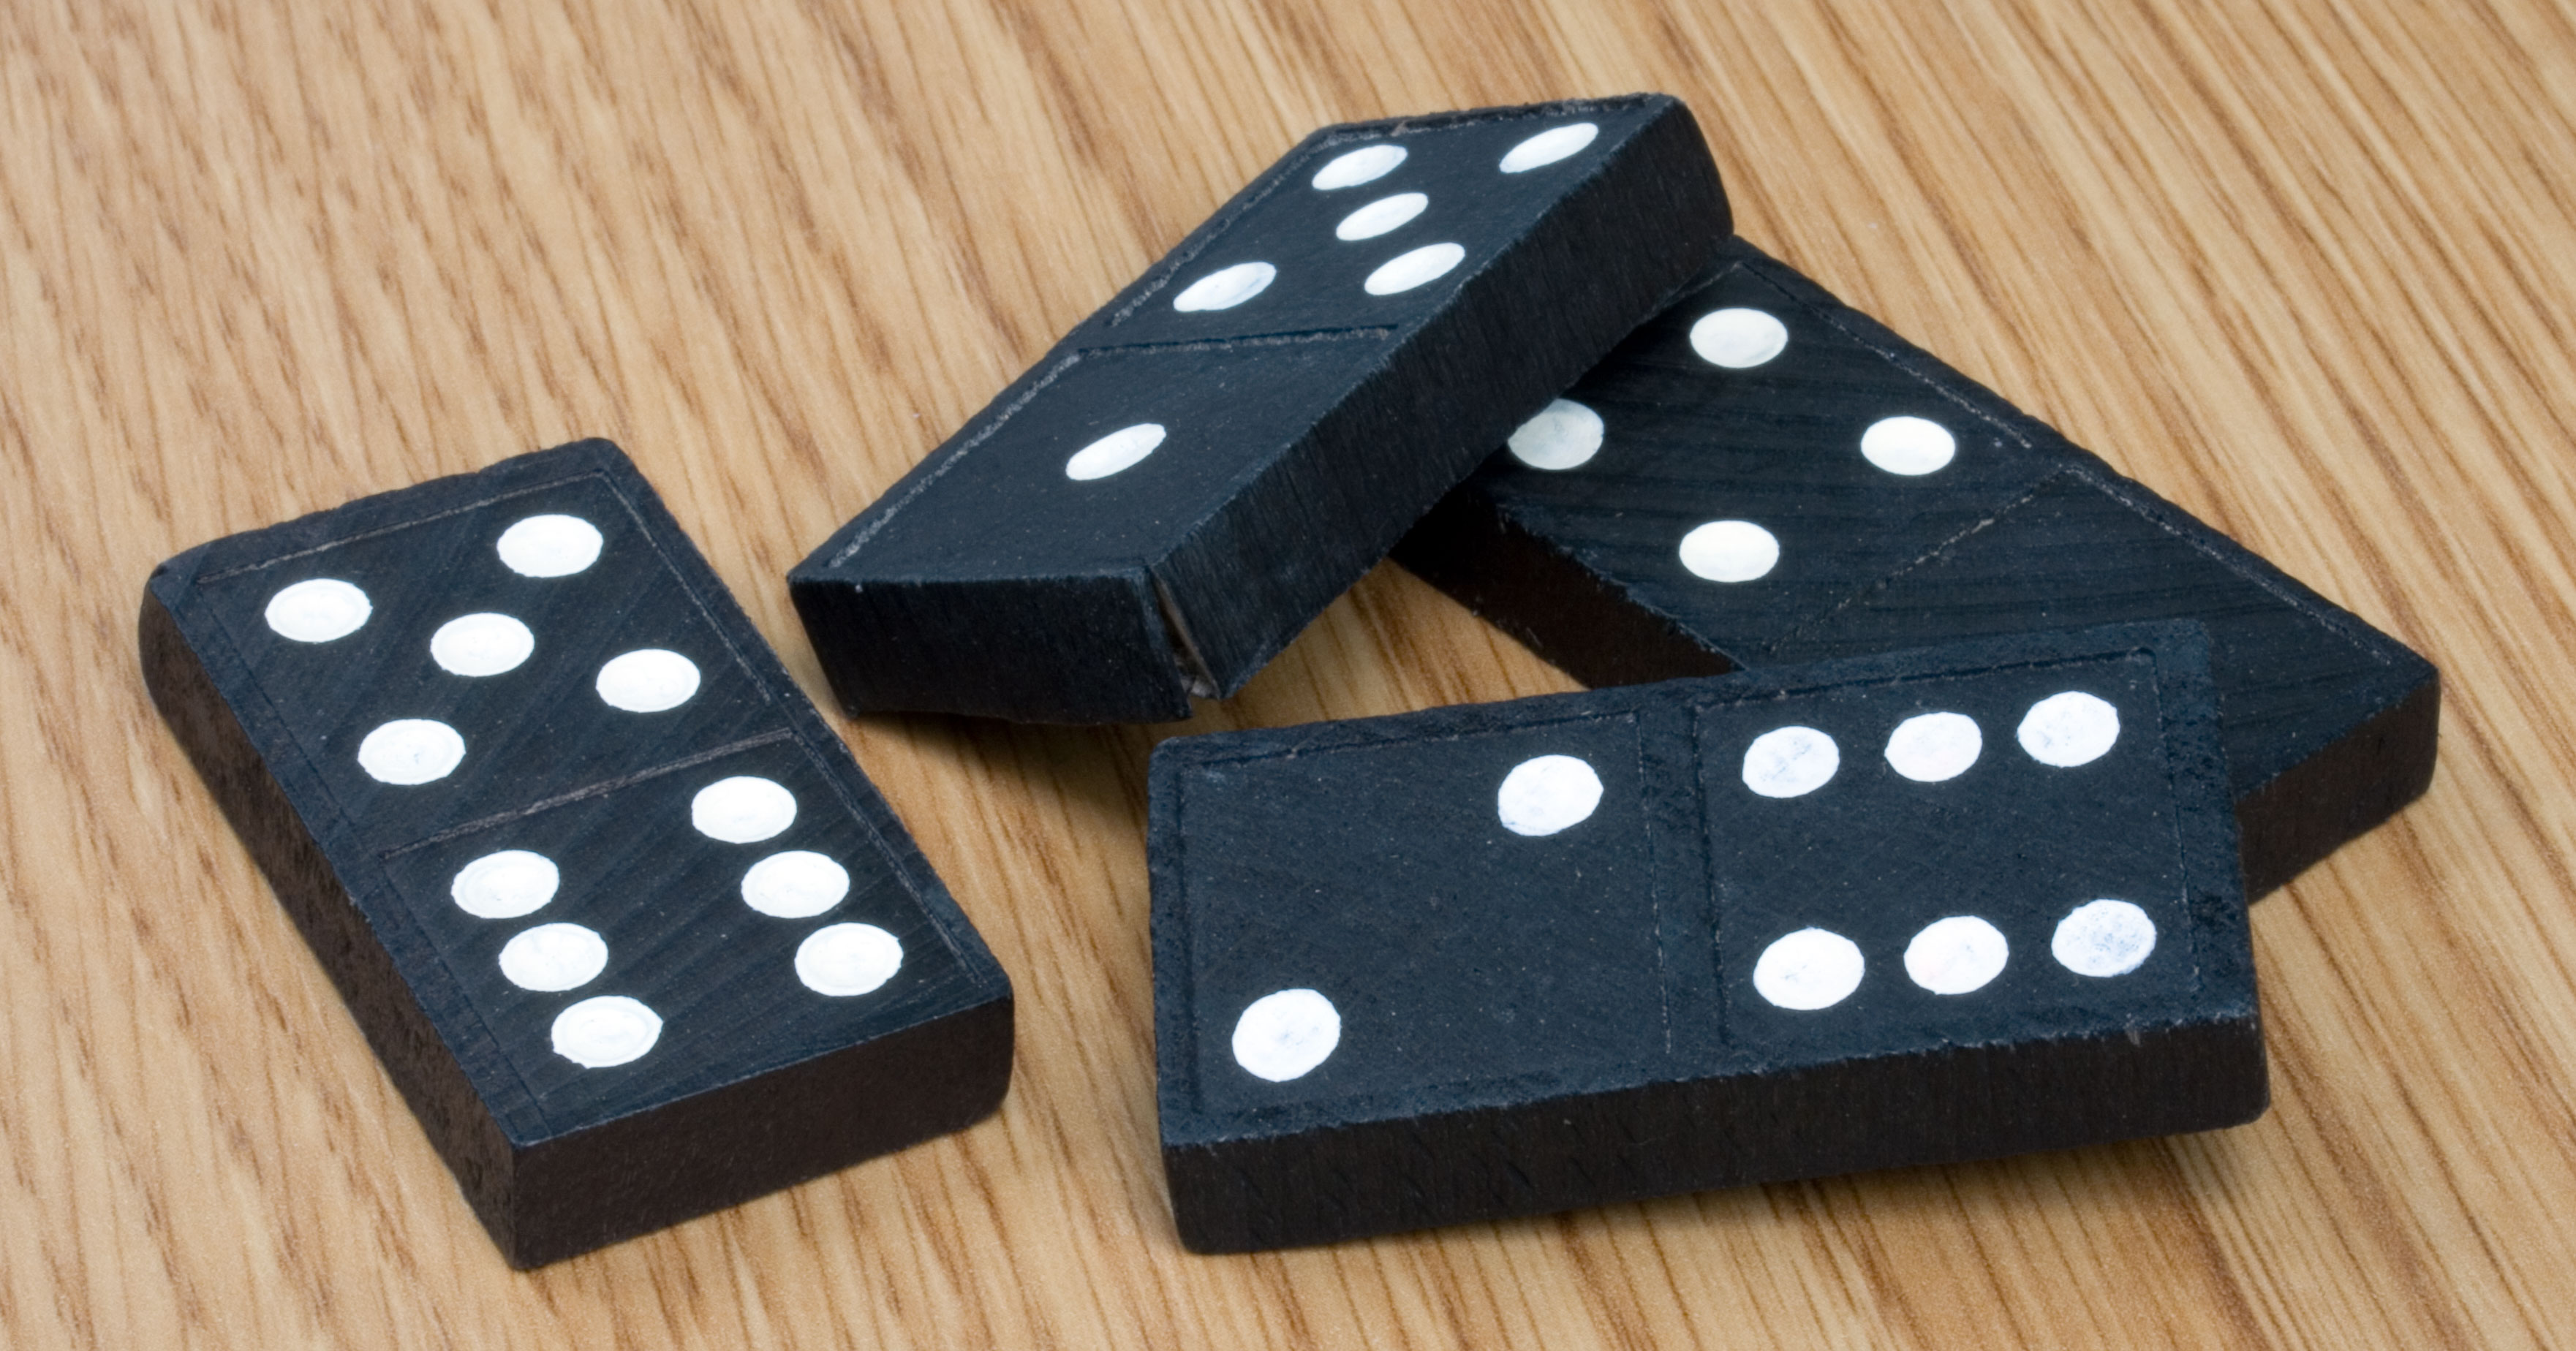 The Domino Effect of Missed GHS Deadlines